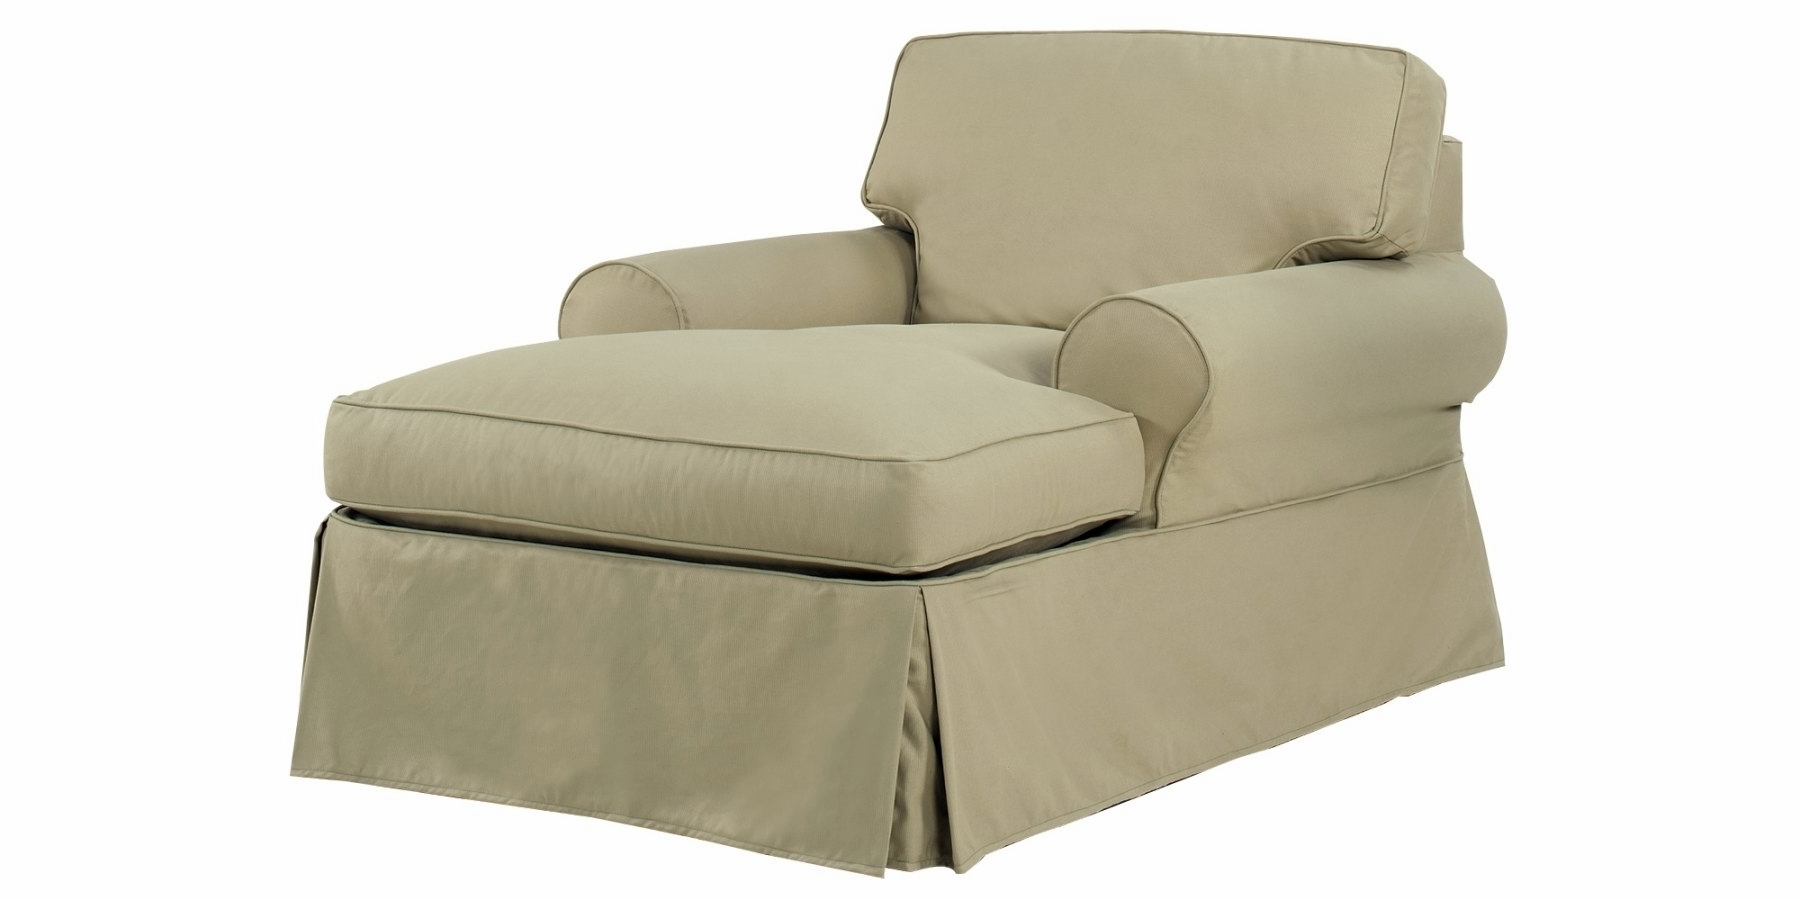 Double Chaise Lounge Chair Cover • Lounge Chairs Ideas Inside Most Recently Released Chaise Lounge Chairs With Arms Slipcover (View 1 of 15)